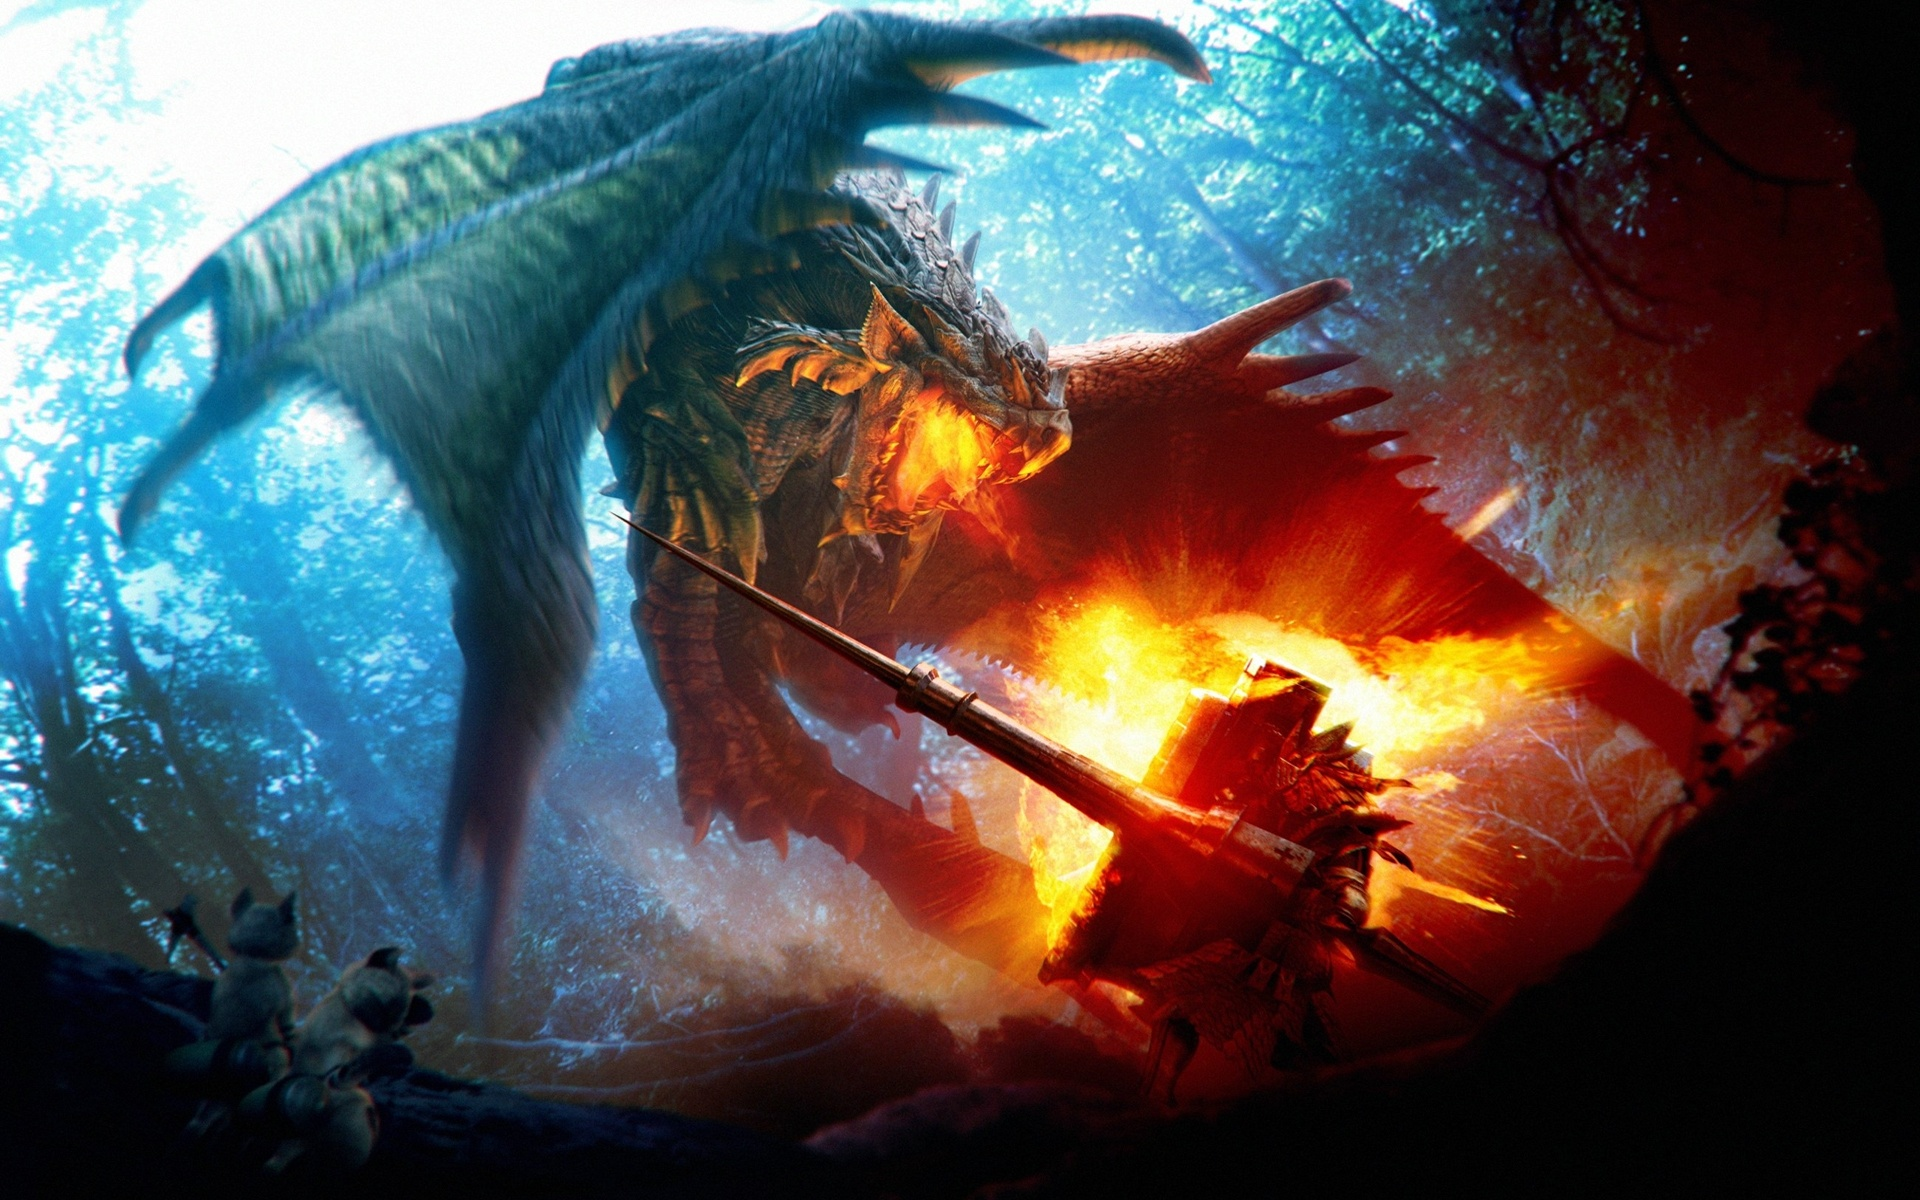 Wallpaper Combat Dragon Fire Art Picture 1920x1200 Hd Picture